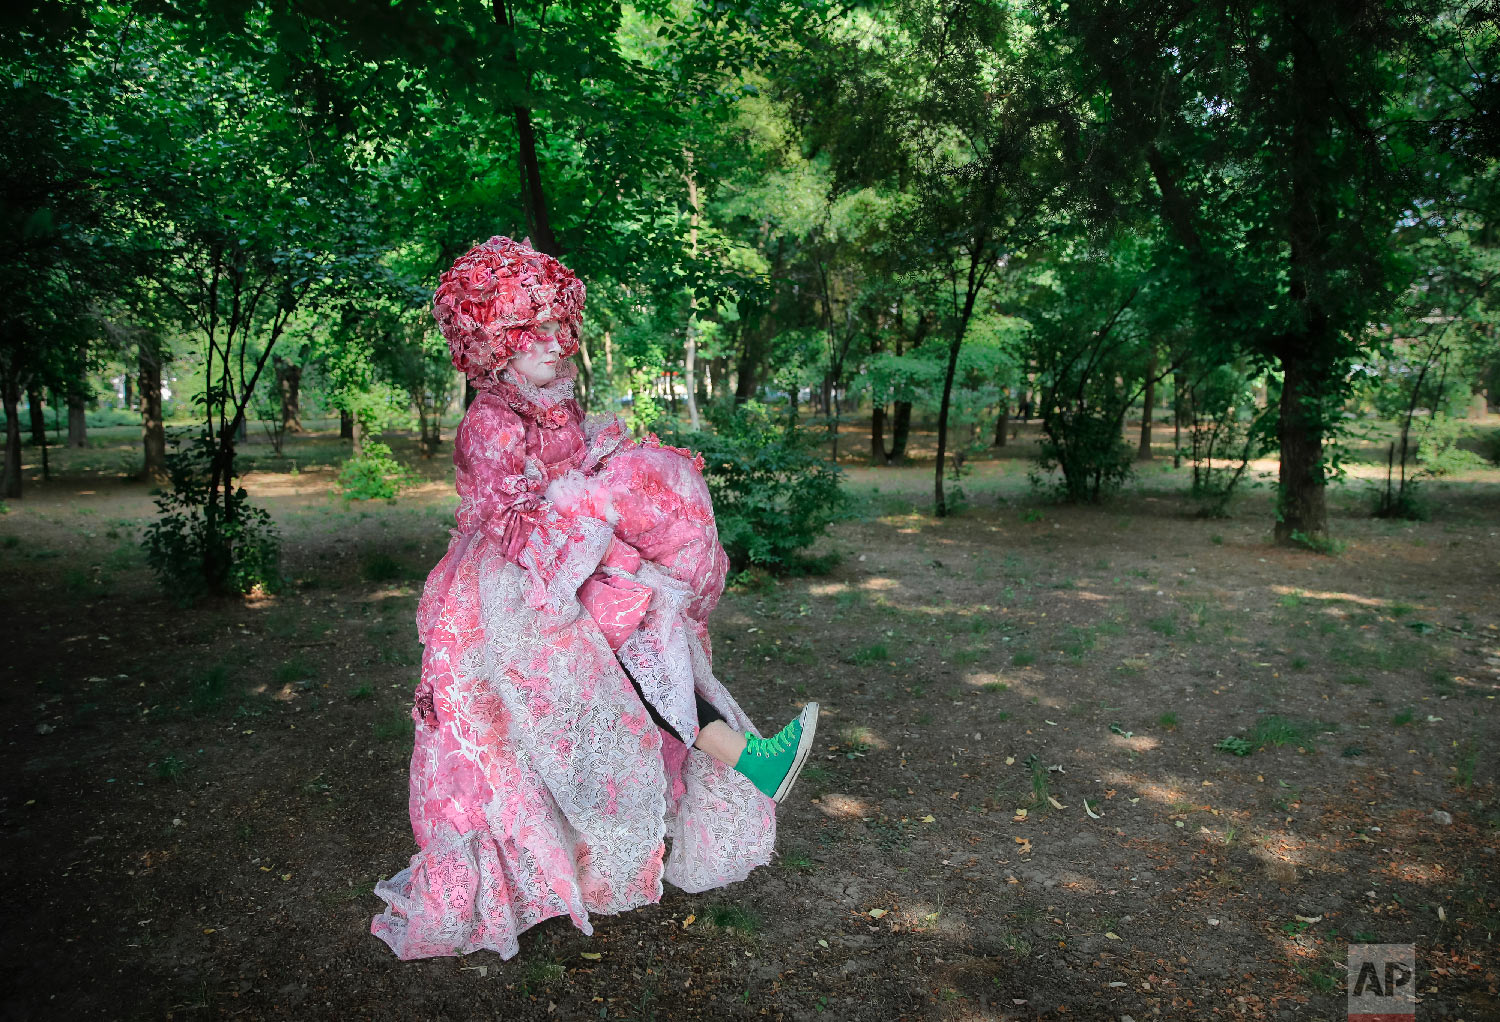 Tania Met, of Spain's Gardener's theatre rehearses her moves for the Rosita character during the Living Statues International Festival, in Bucharest, Romania on May 27, 2018 (AP Photo/Vadim Ghirda)